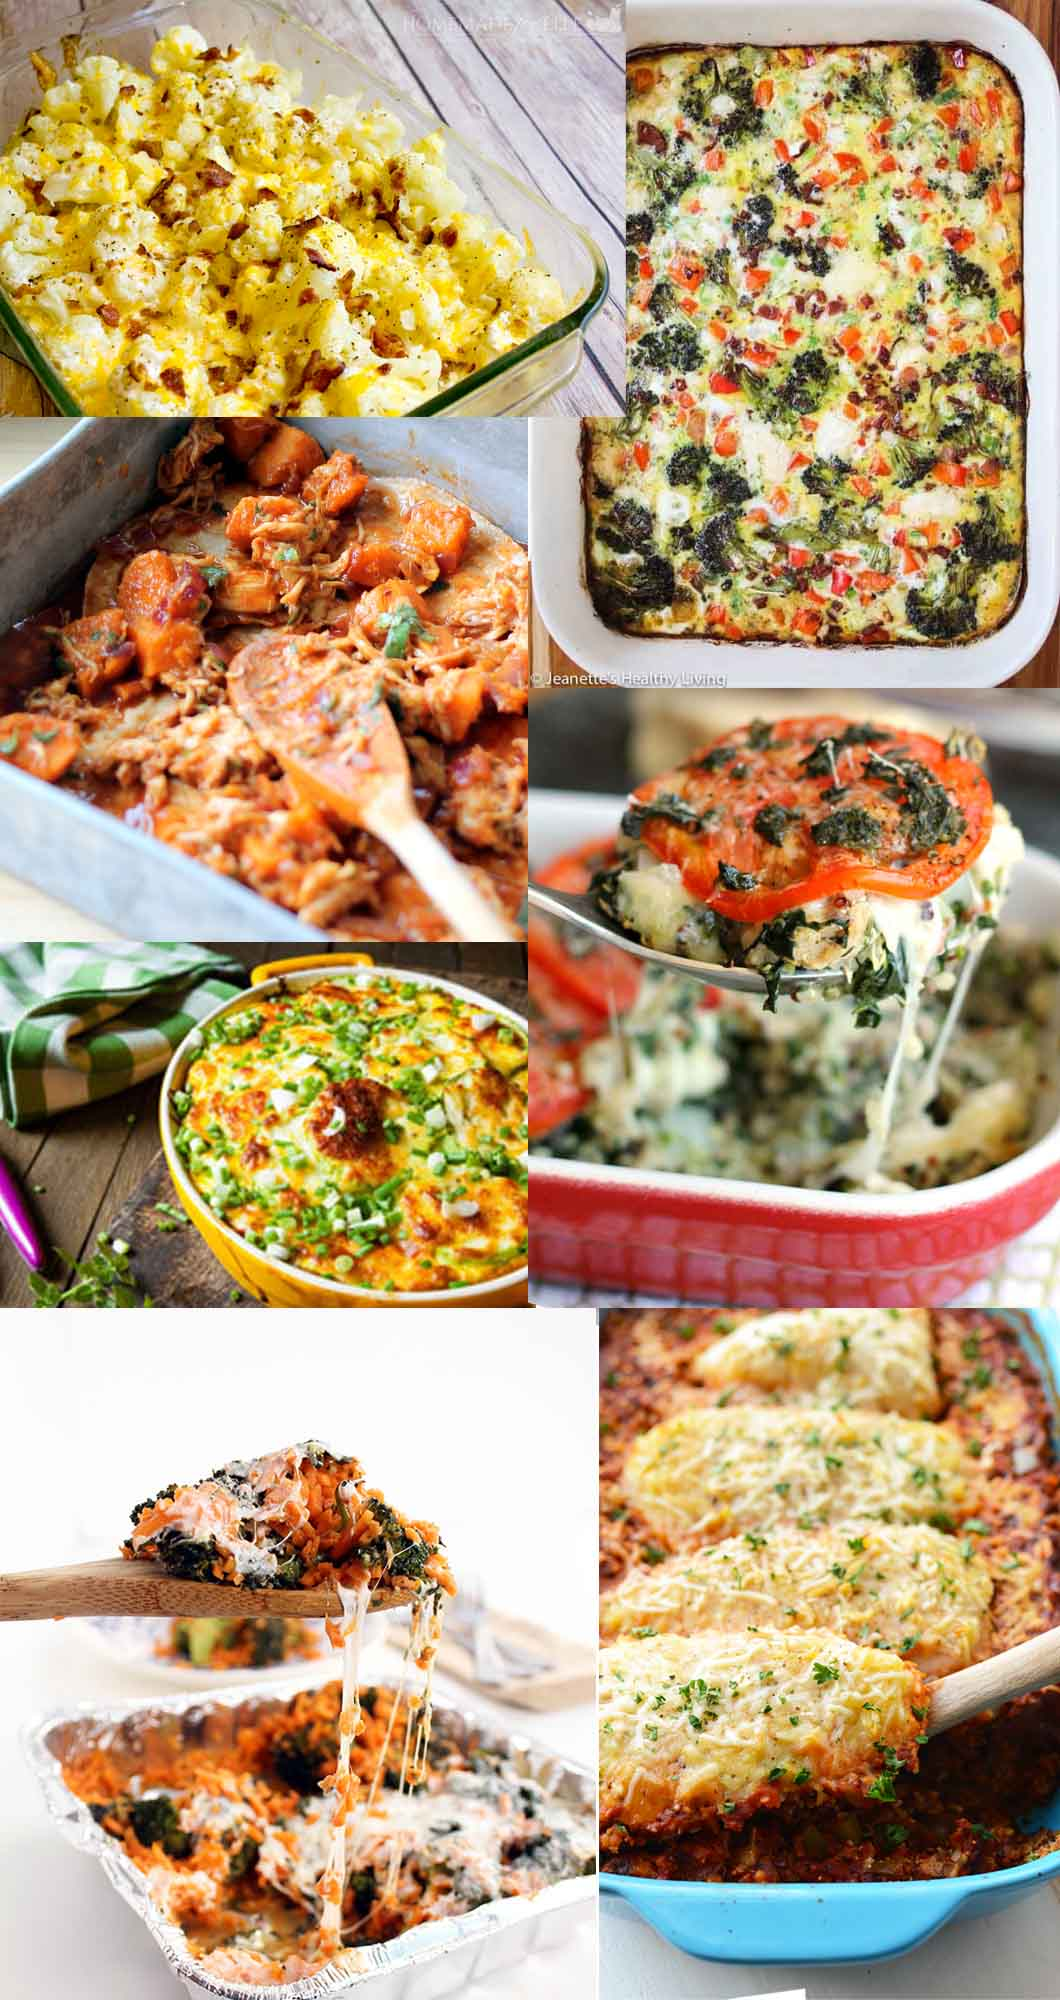 20 Healthy Casseroles For Your Whole Family